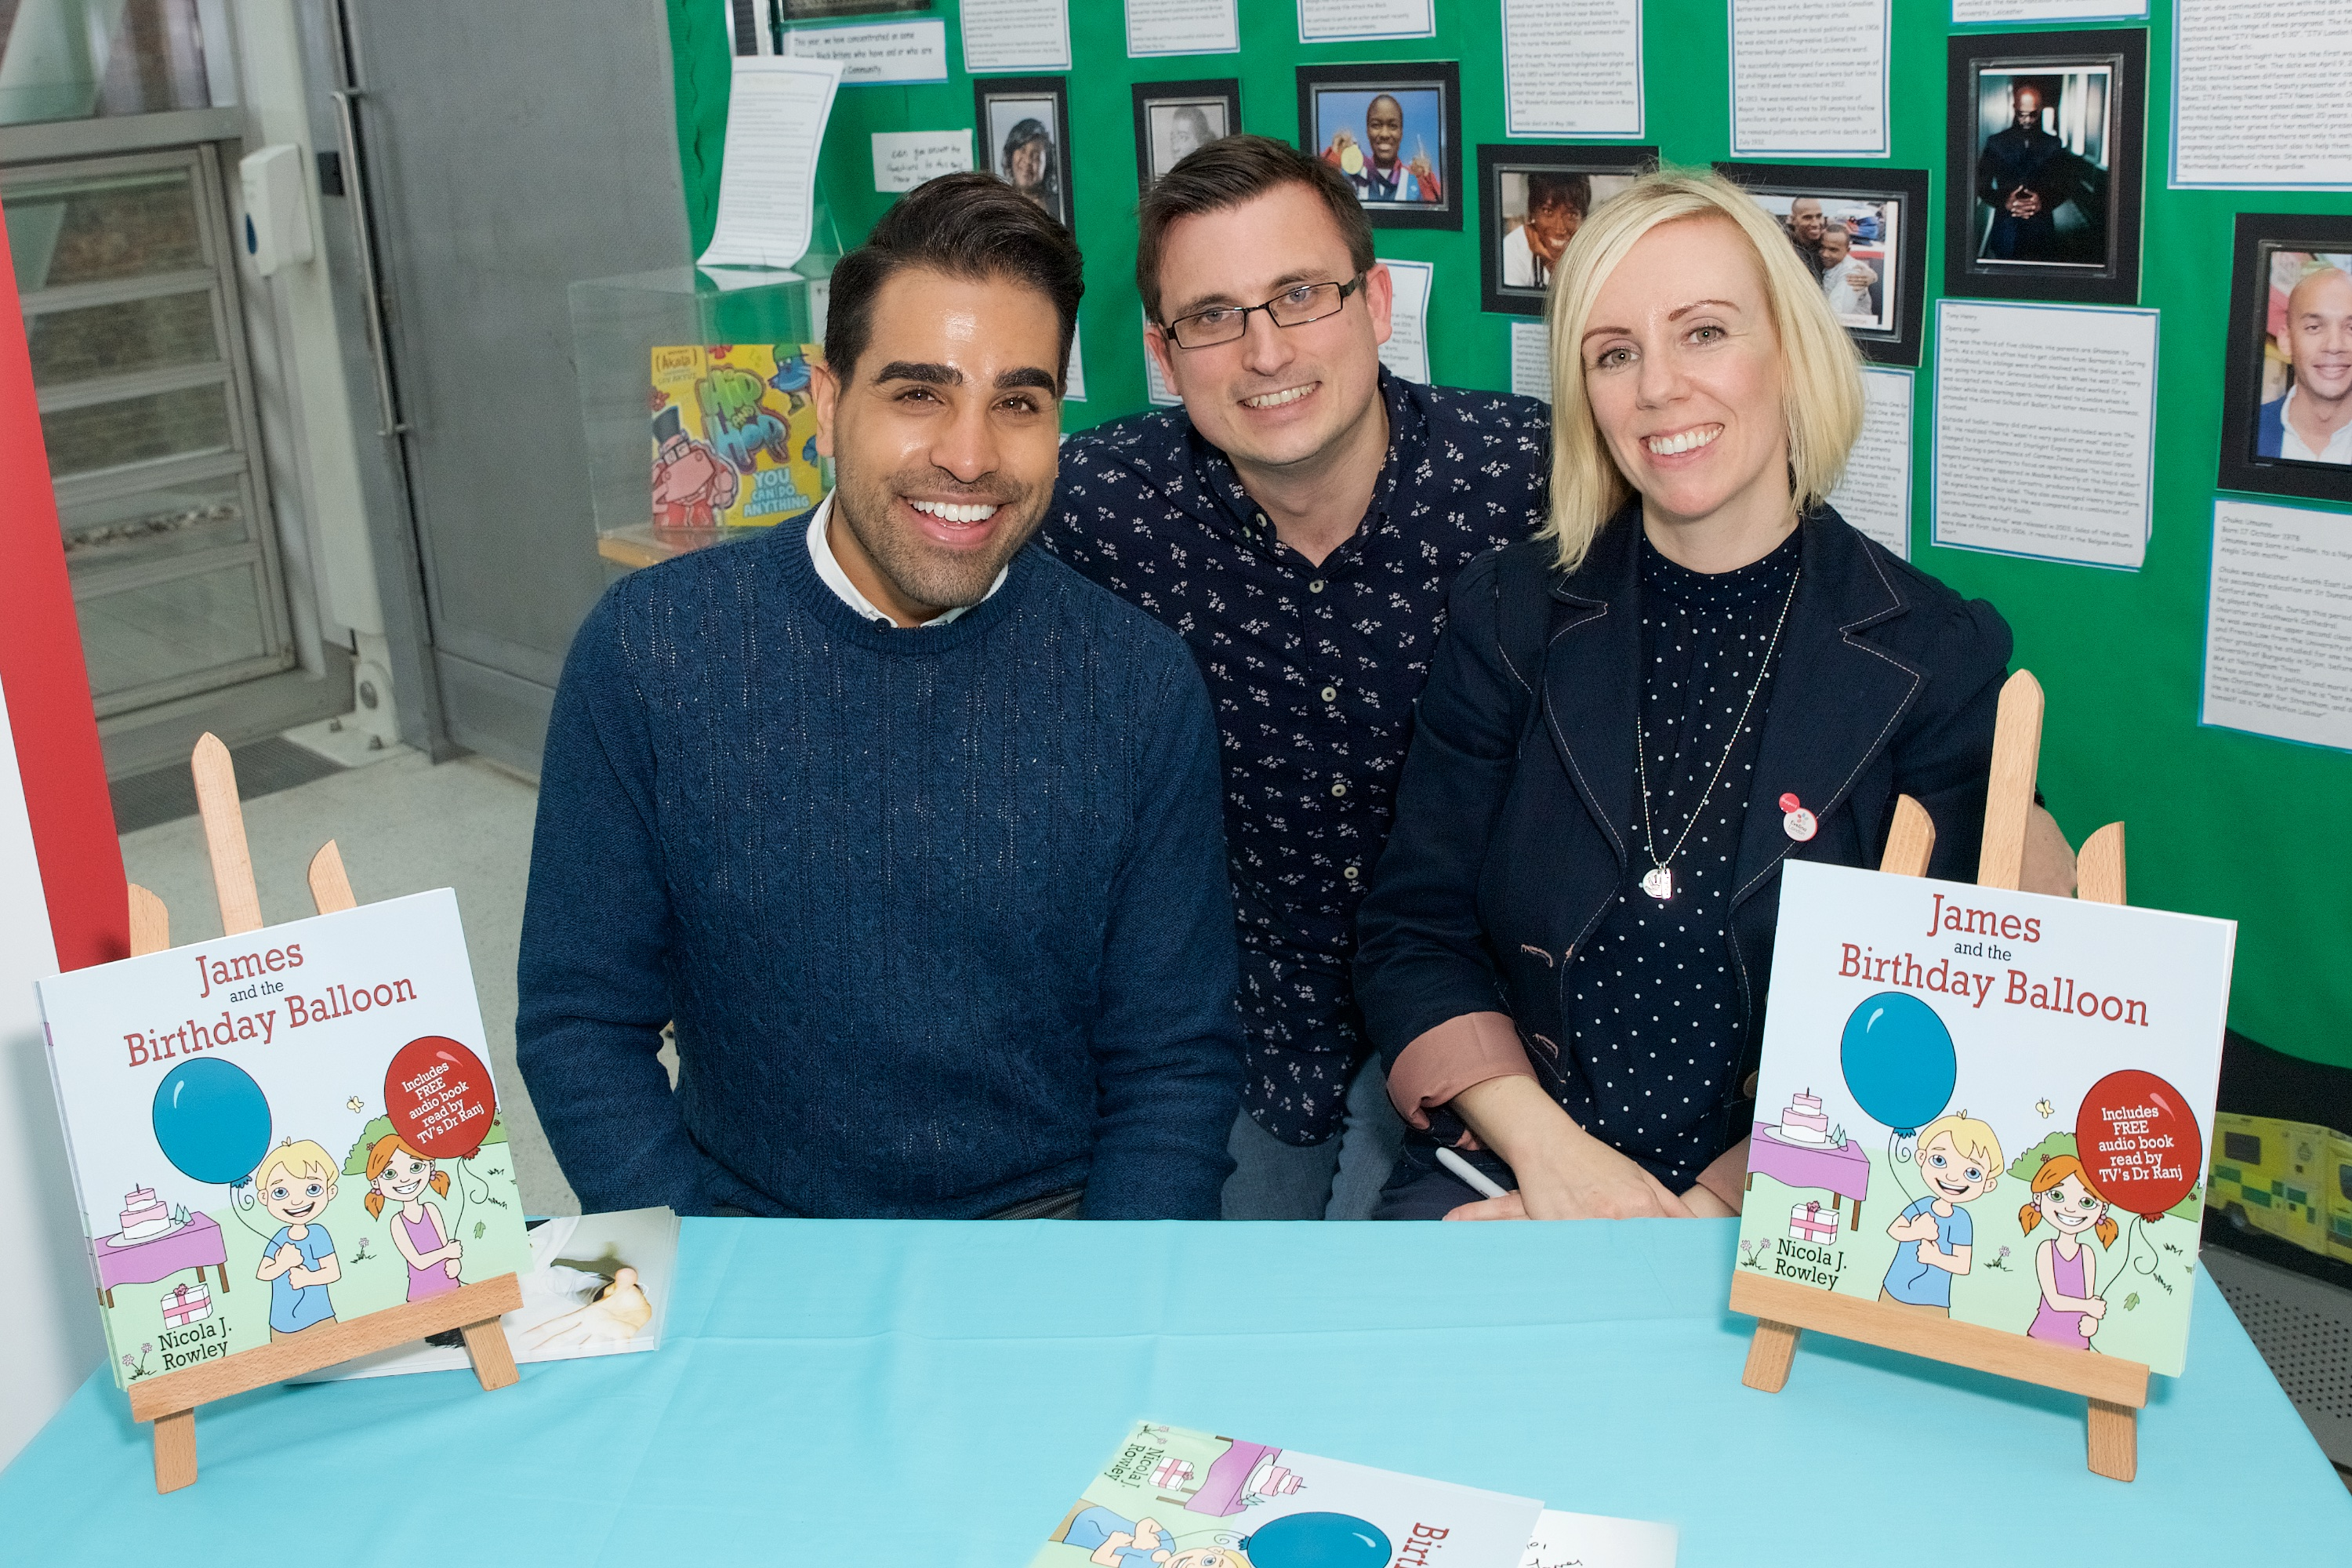 Meeting Nicola Rowley and Dr Ranj at the launch of James and the Birthday Balloon